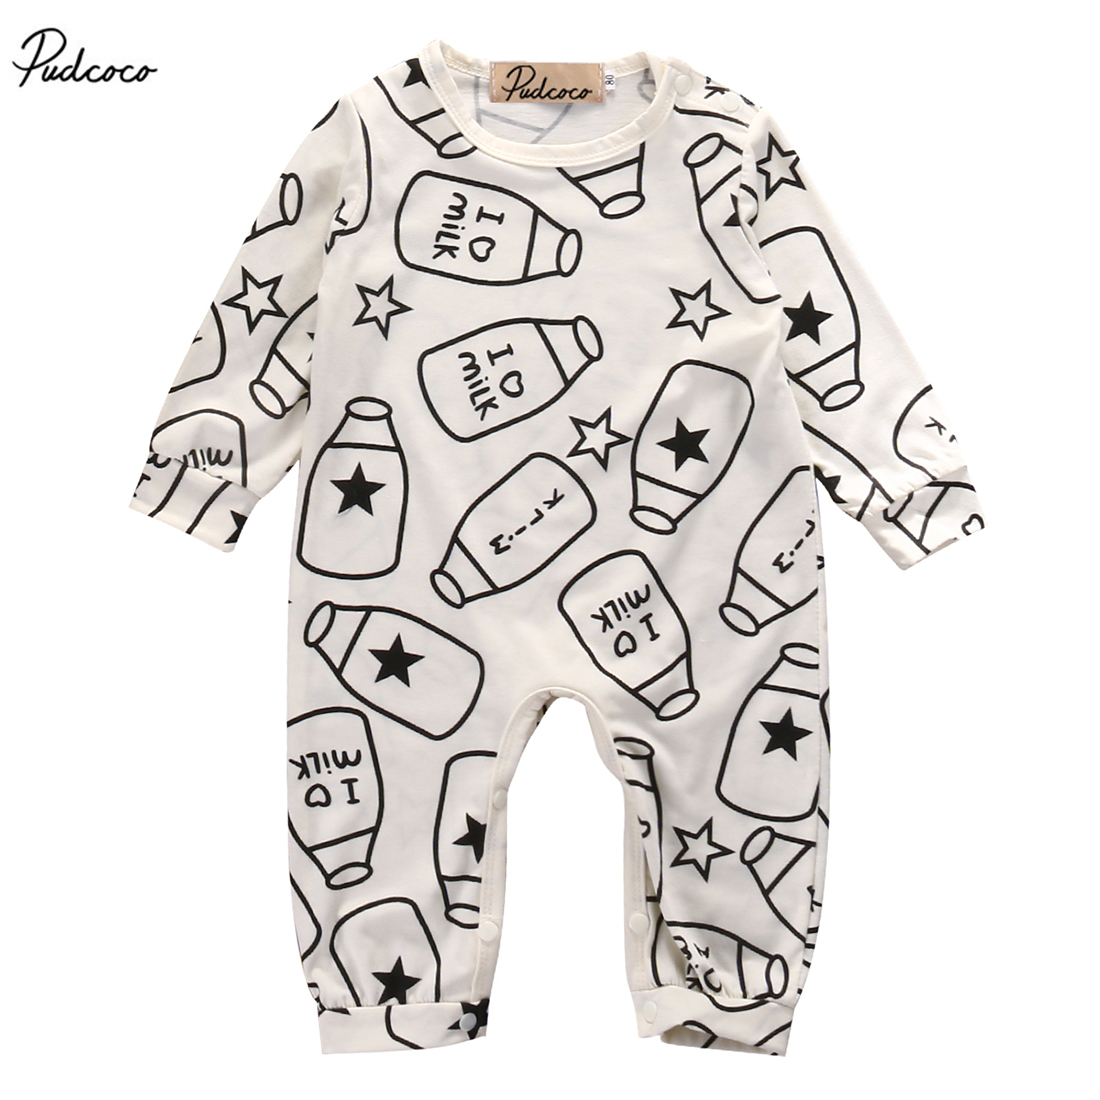 New 2017 Summer Newborn Kids Baby Boy Girls Infant Milk Bottle   Romper   Long Sleeve Jumpsuit Clothes Outfit 0-12M